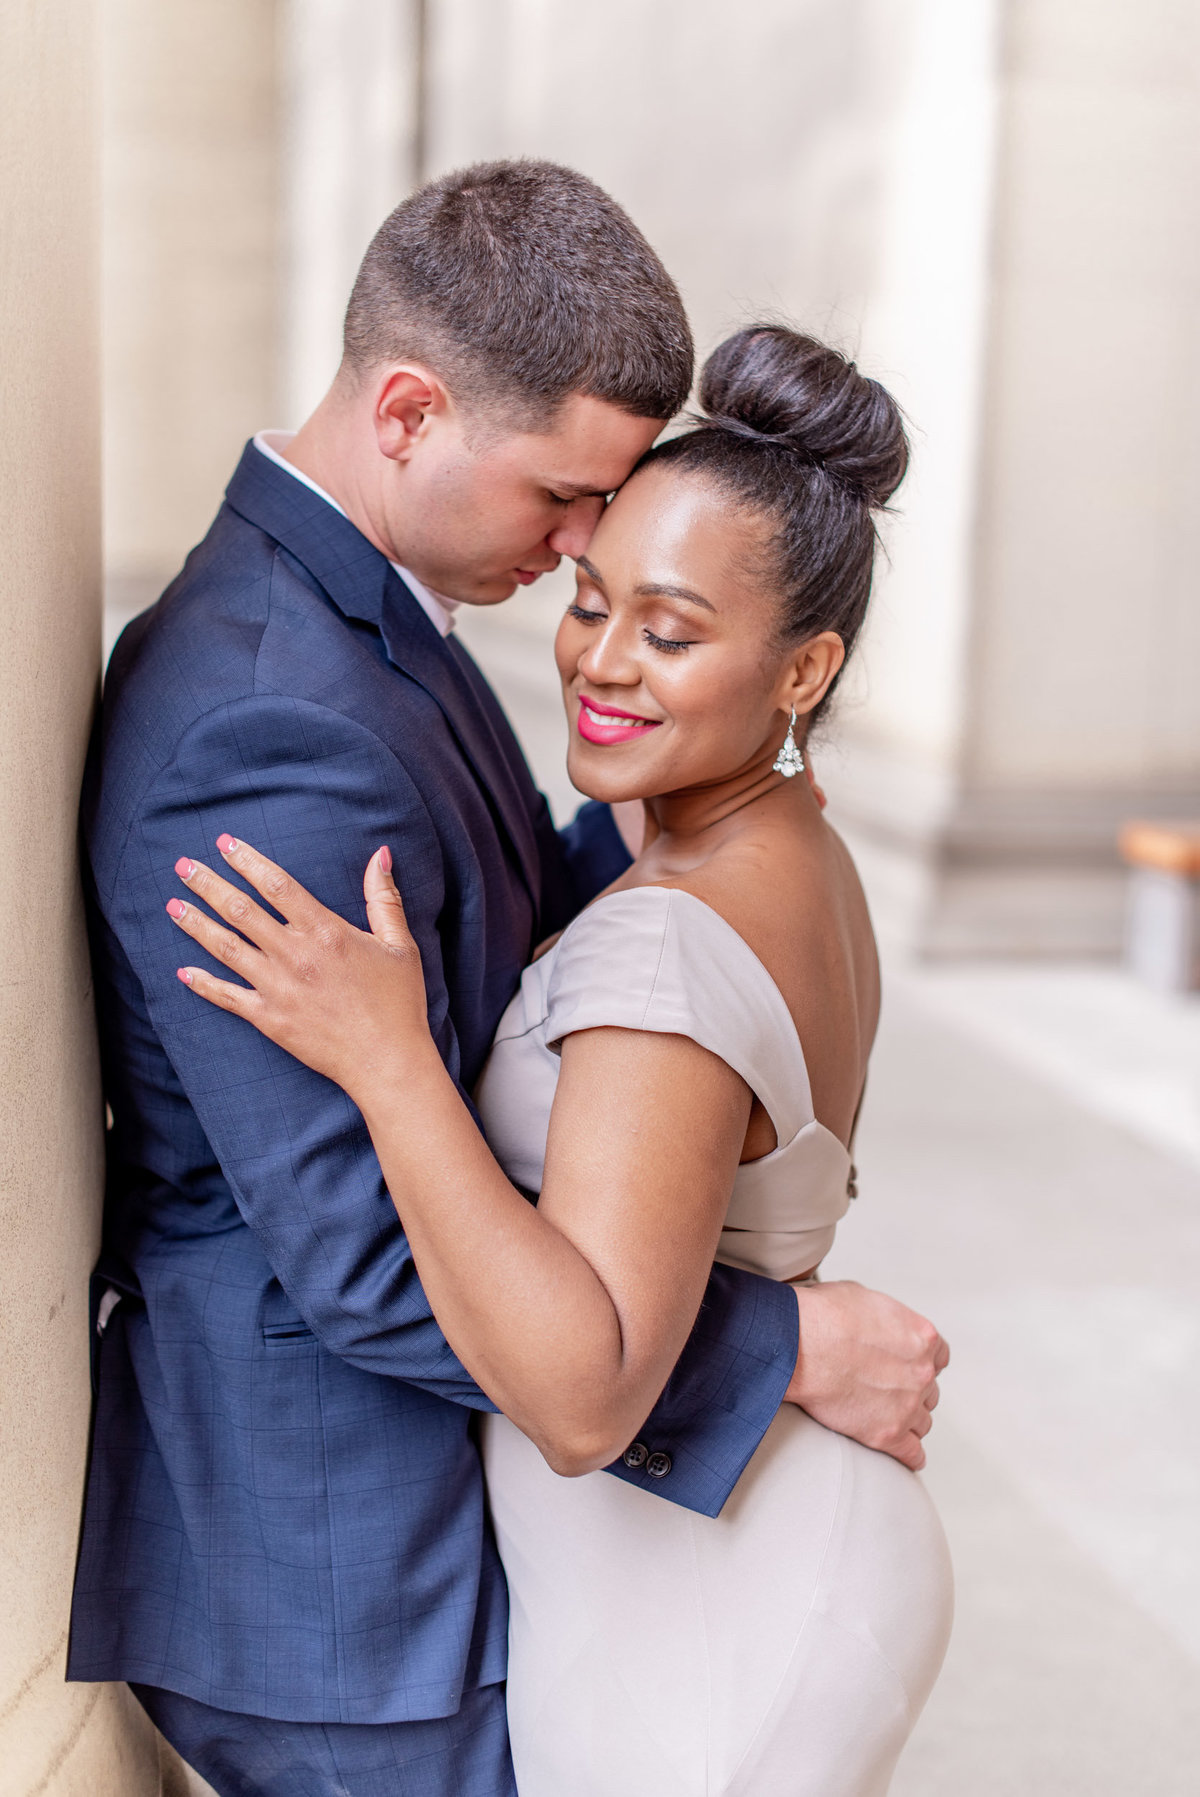 DowntownPittsburghPAWeddingEngagementPhotography-17